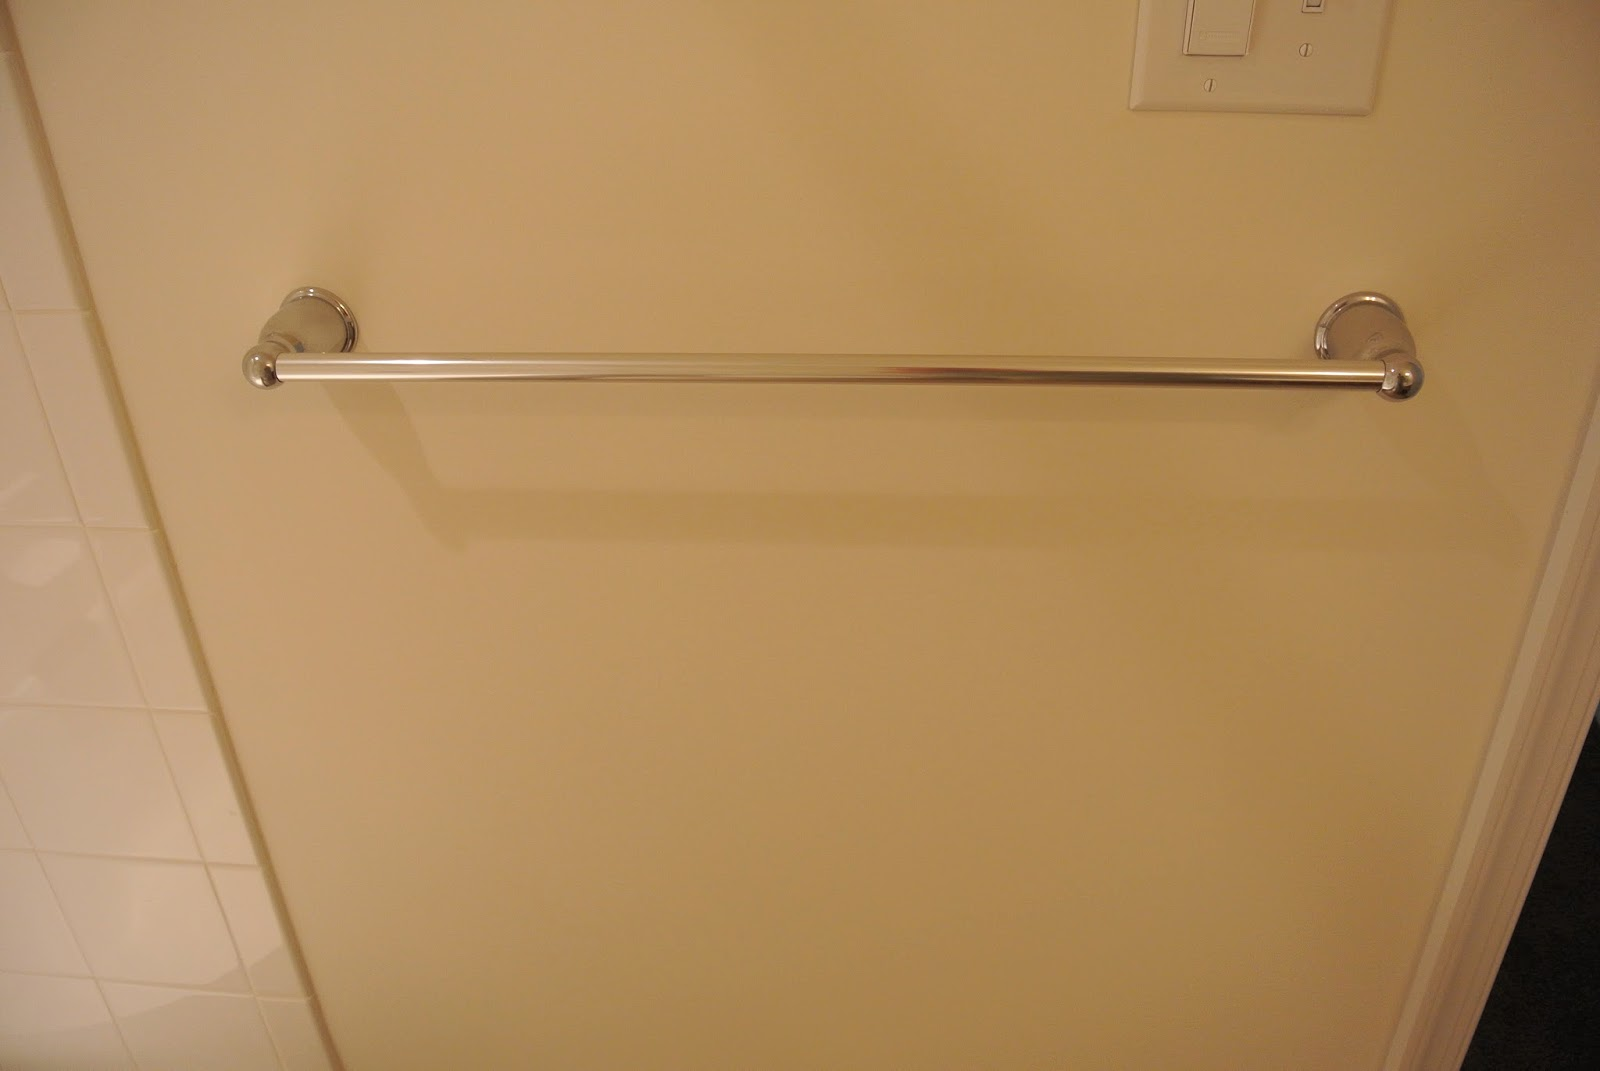 A picture of one of the towel racks